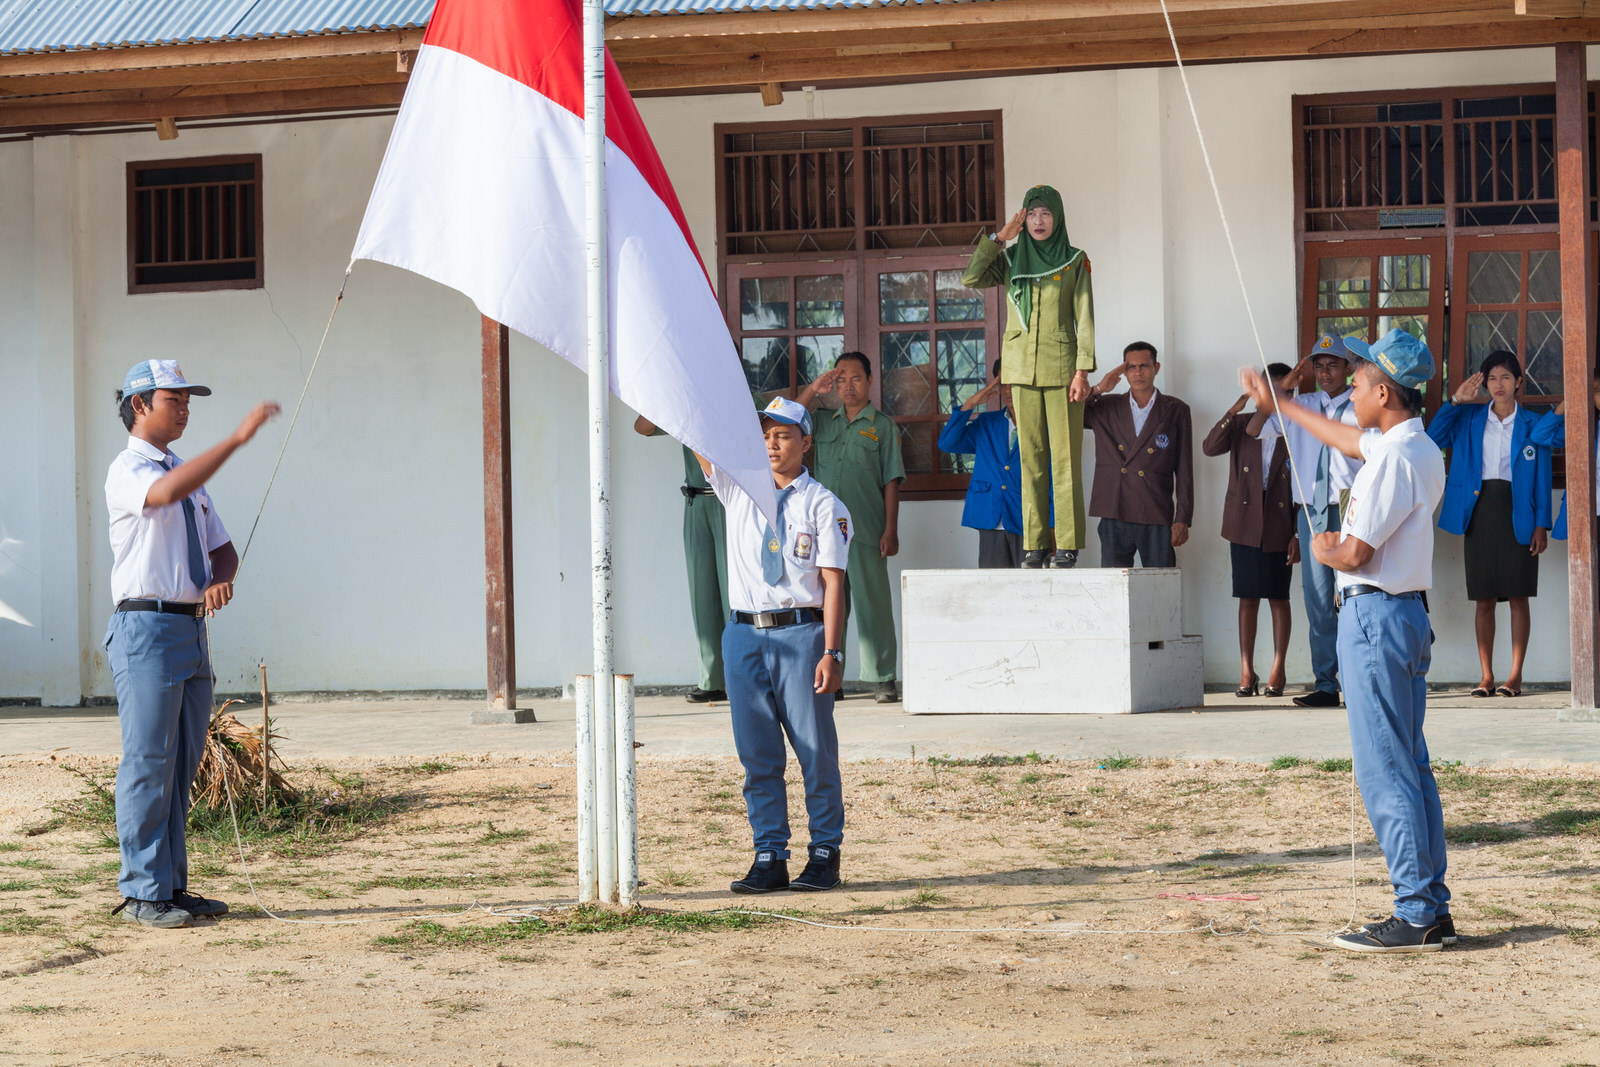 Ibu Ratna salutes during the flag ceremony at her school.